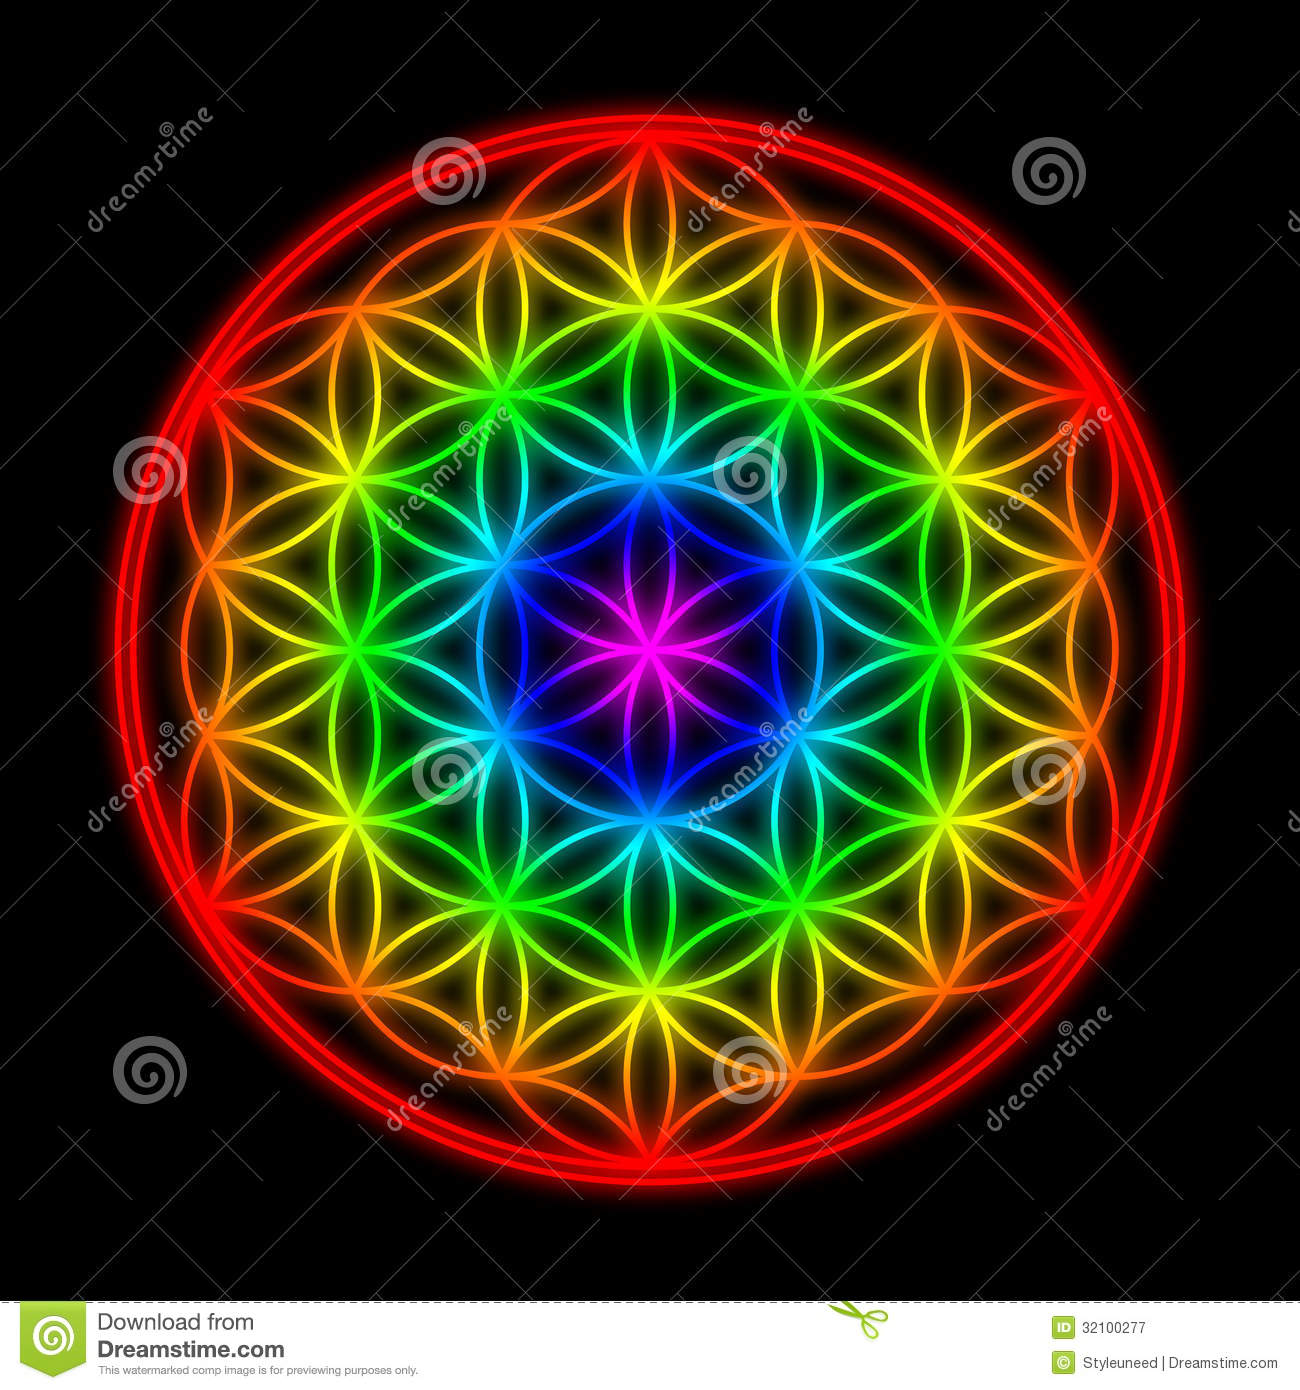 Flower Of Life Royalty Free Stock Photography